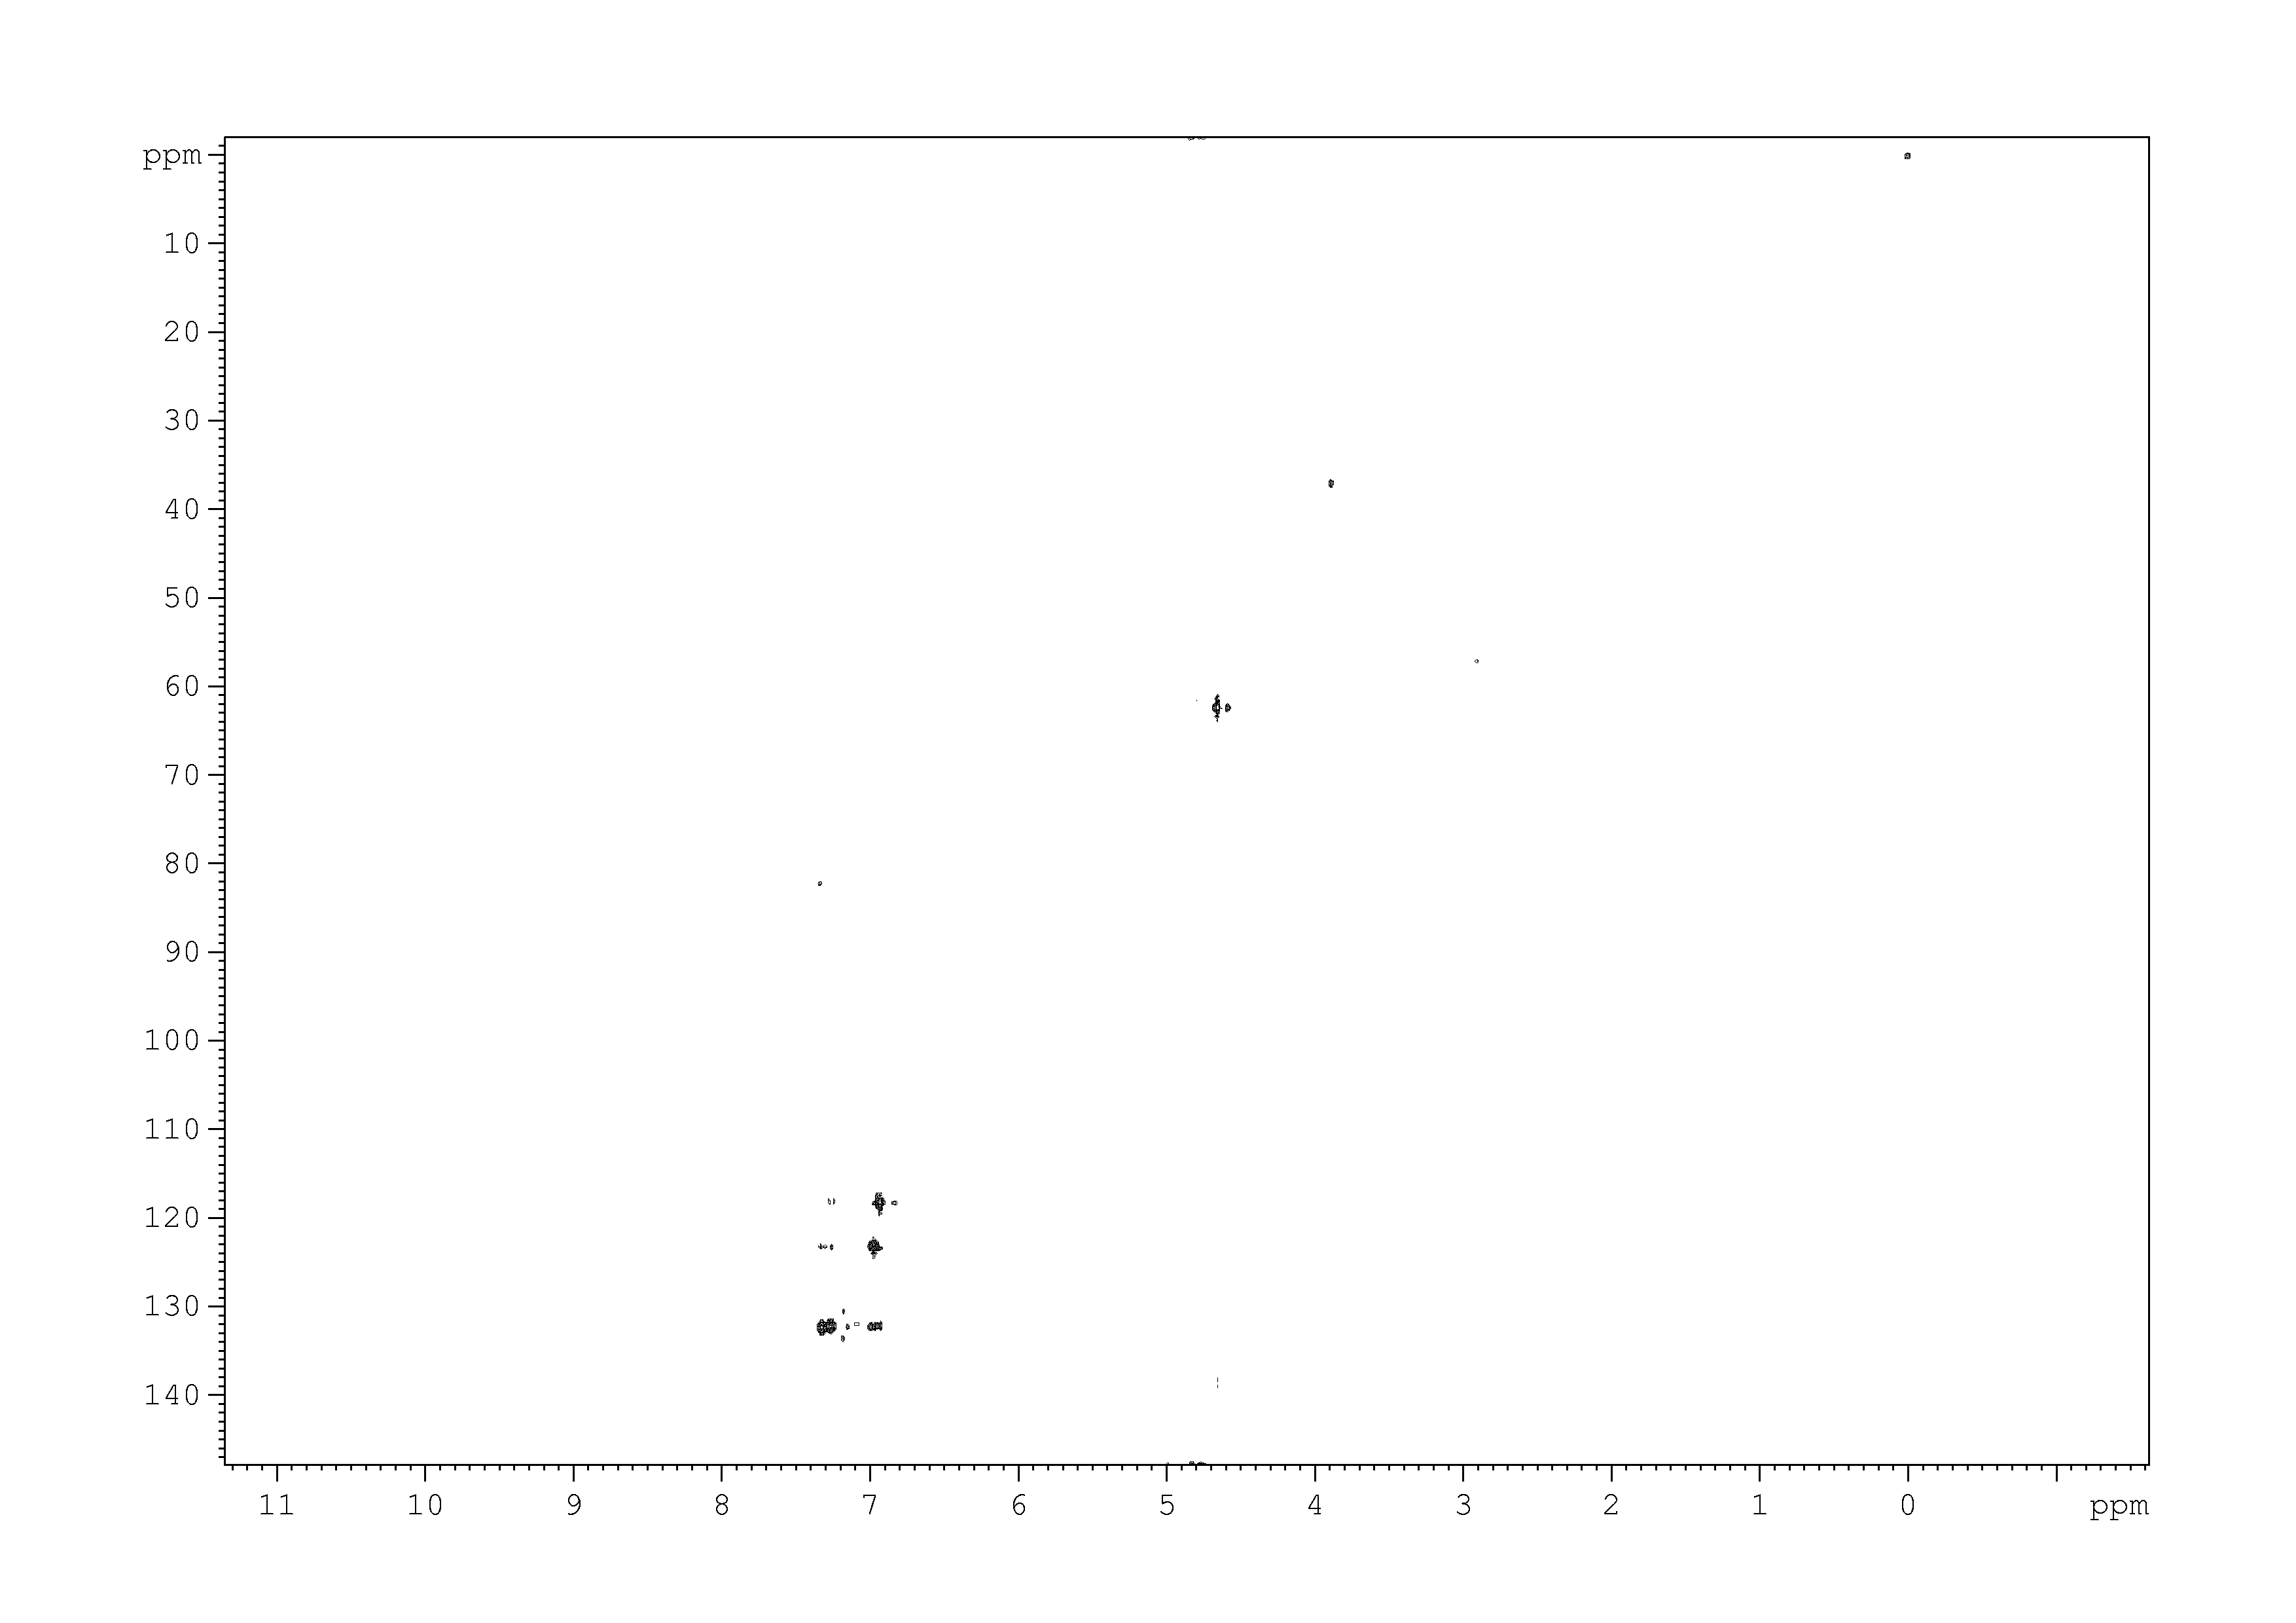 2D [1H,13C]-HSQC, 7.4 spectrum for saligenin